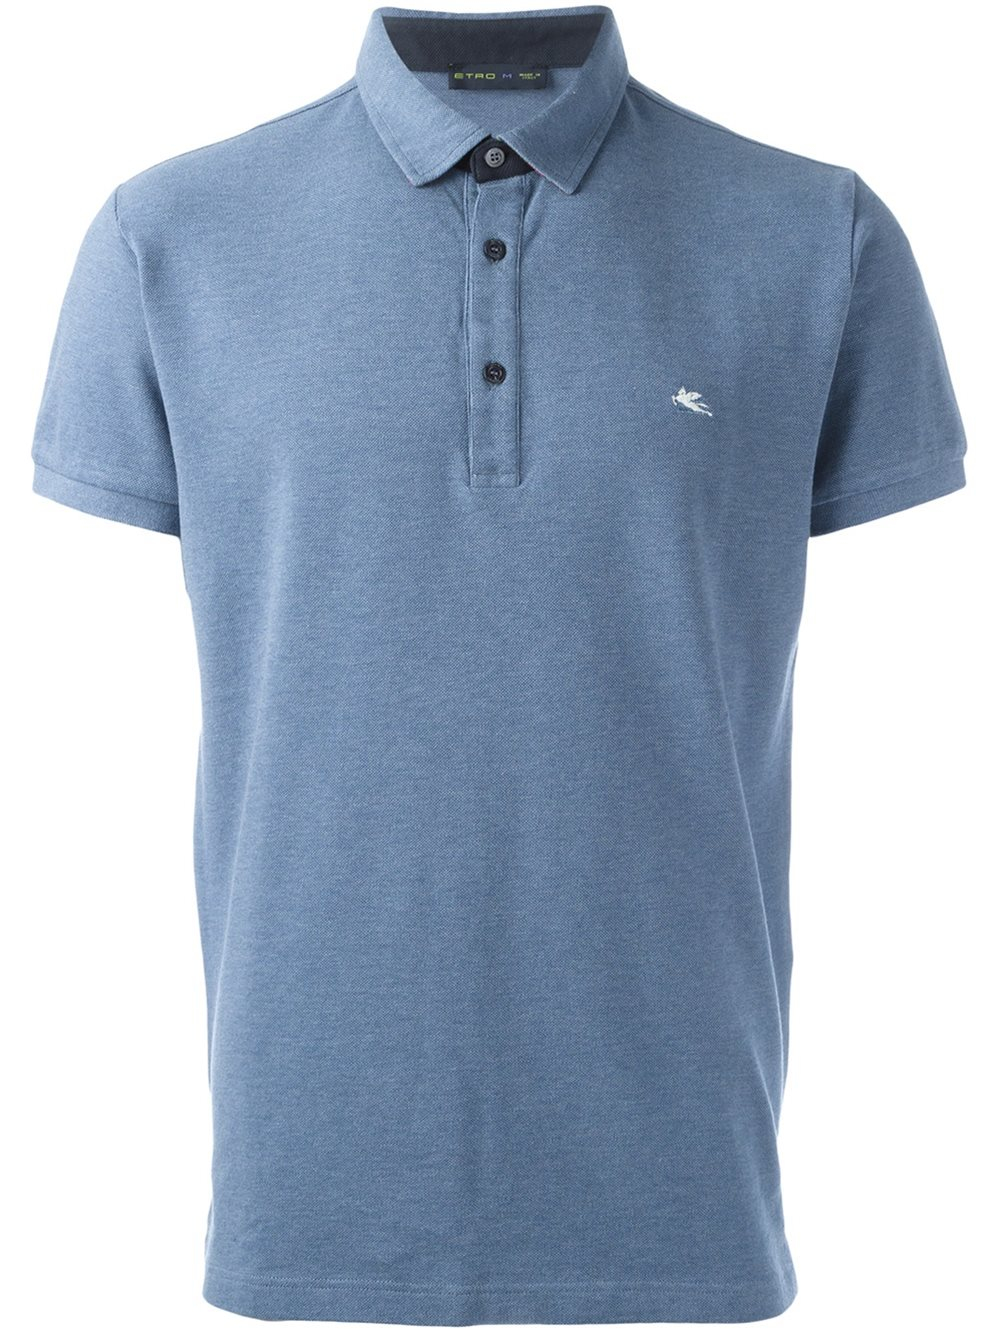 Etro embroidered logo polo shirt in blue for men lyst for Polo shirts with logos